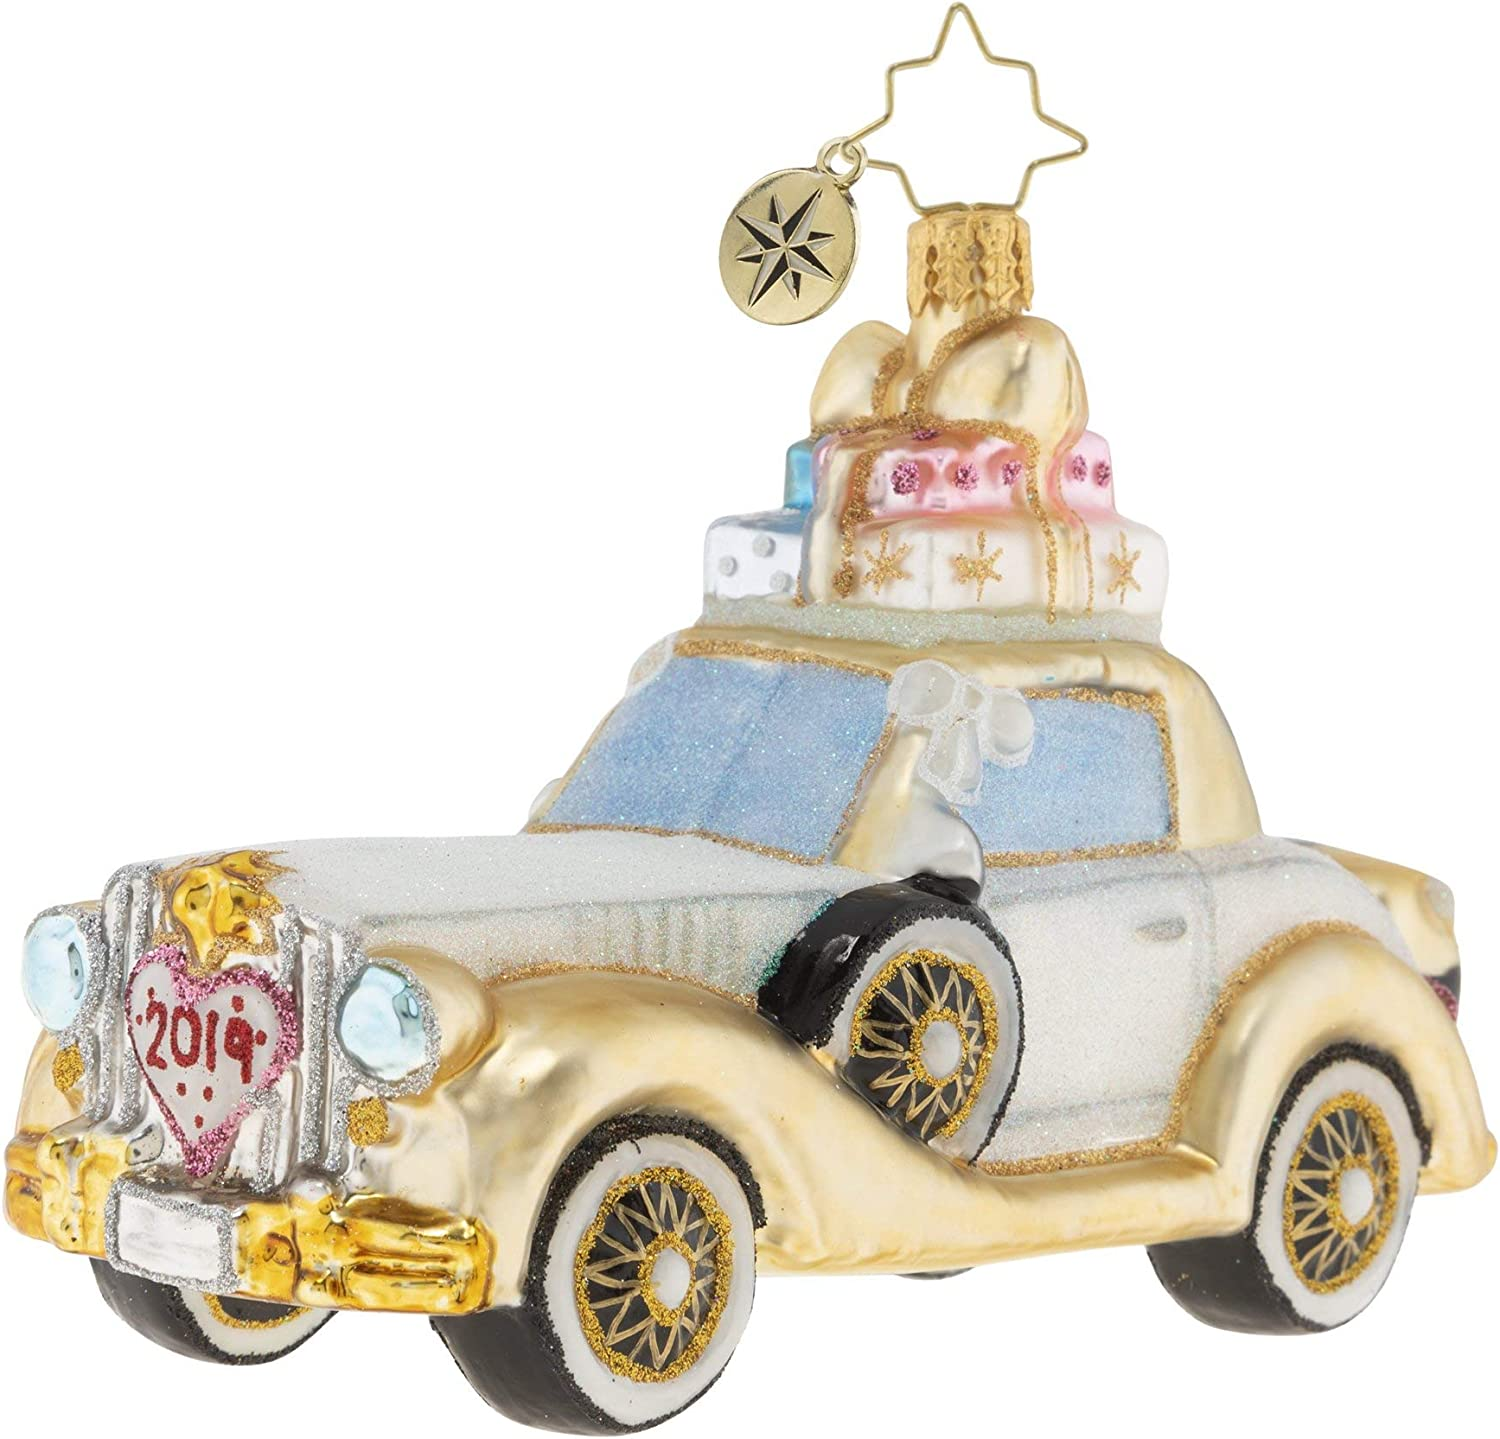 Christopher Radko Hand-Crafted European Glass Christmas Decorative Figural Ornament, Wedding Bliss Chariot